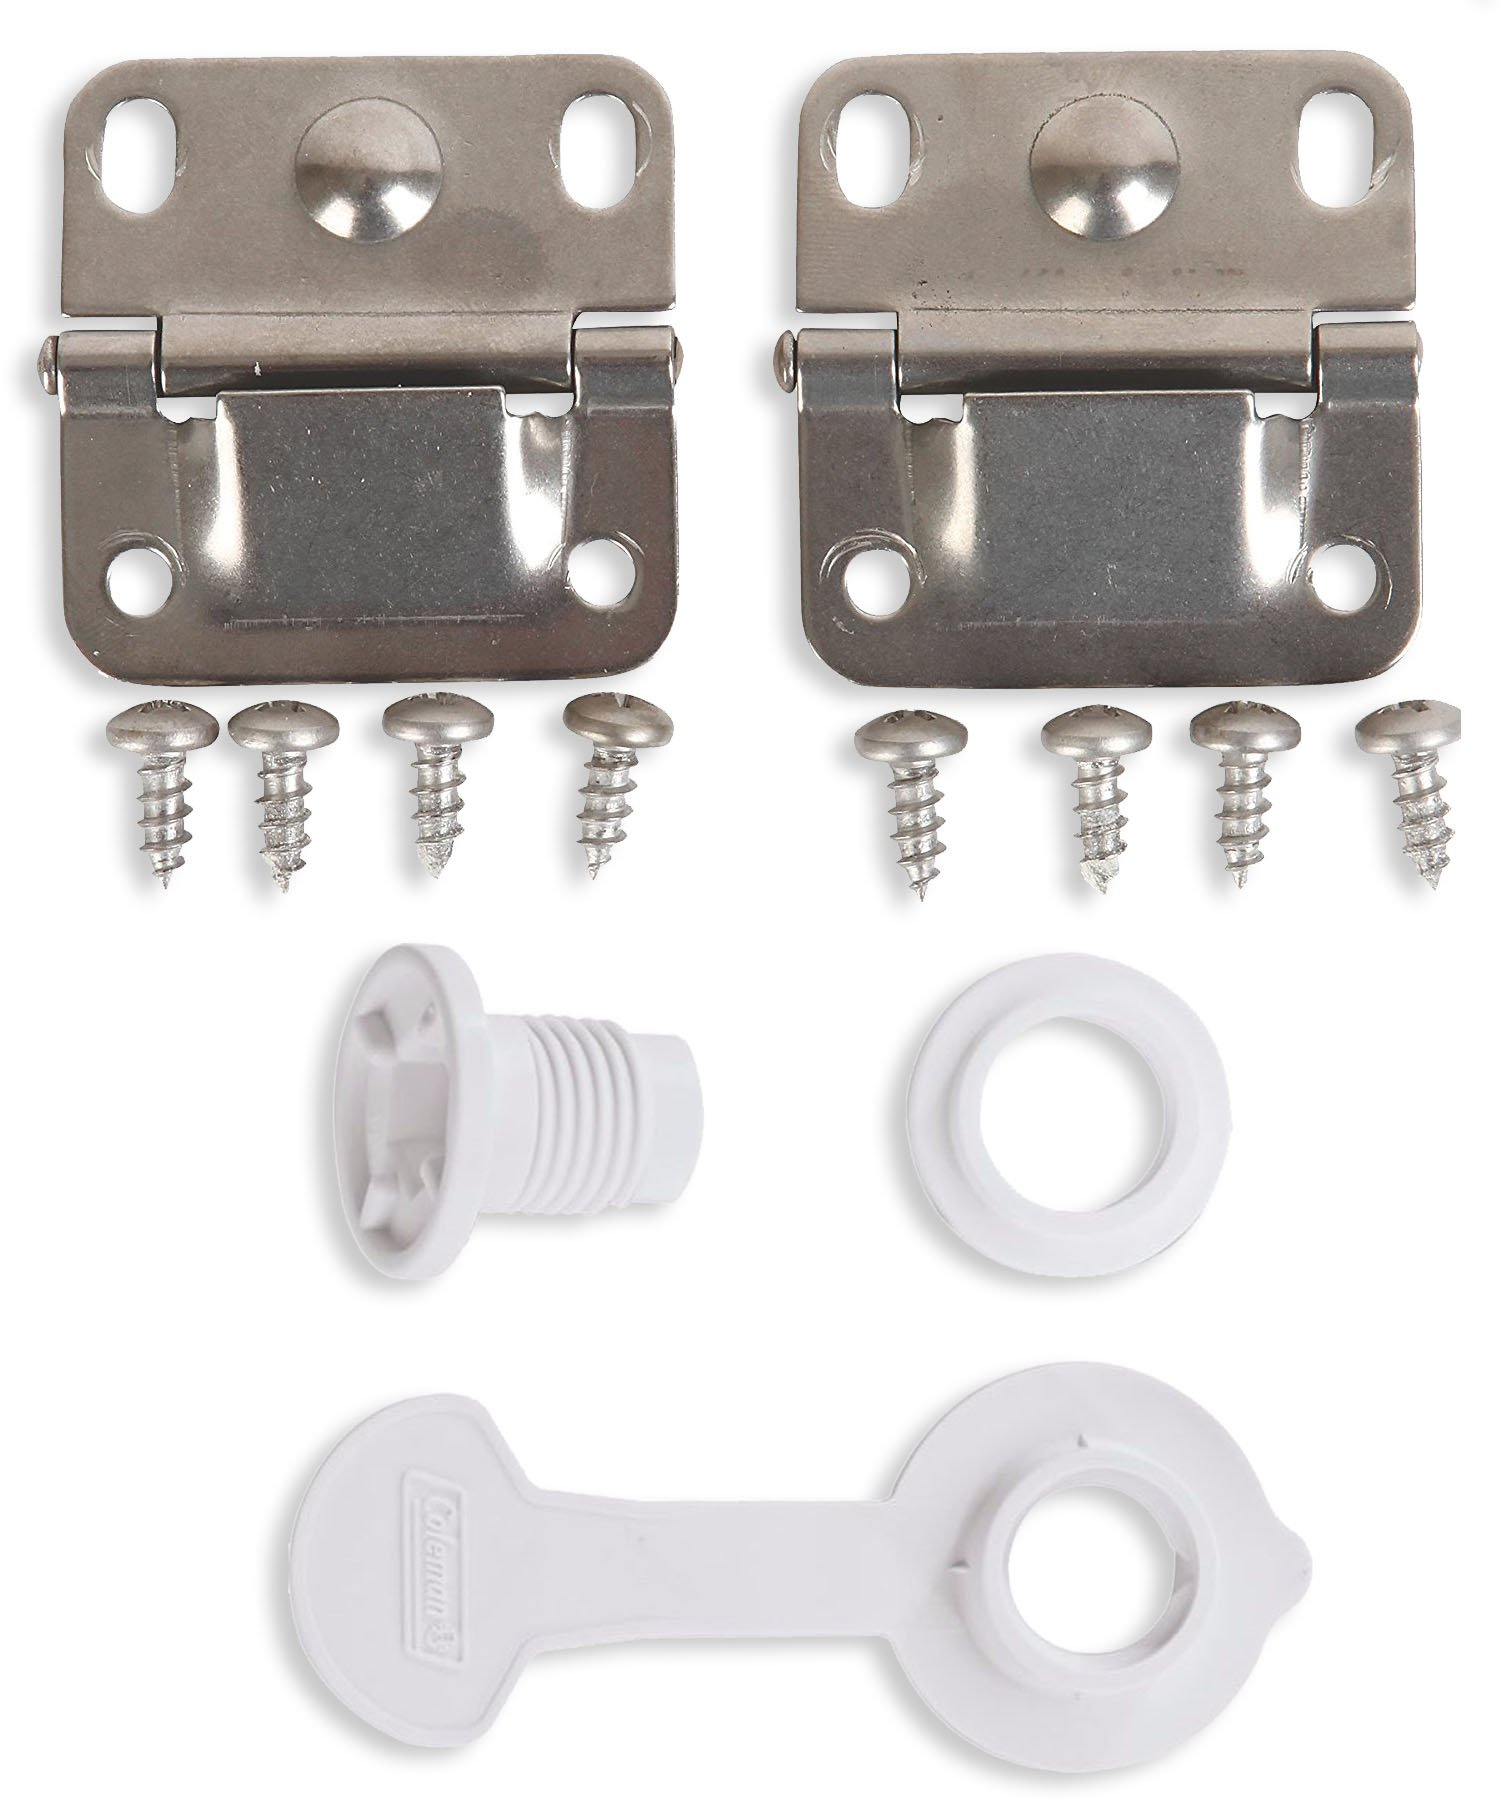 Coleman Ice Chest Cooler Replacement Stainless Steel Hinges and Screws Set & Standard Drain Plug Assembly - 1'' Shaft Length Combo/Bundle (in Package by Main Event USA) by Coleman